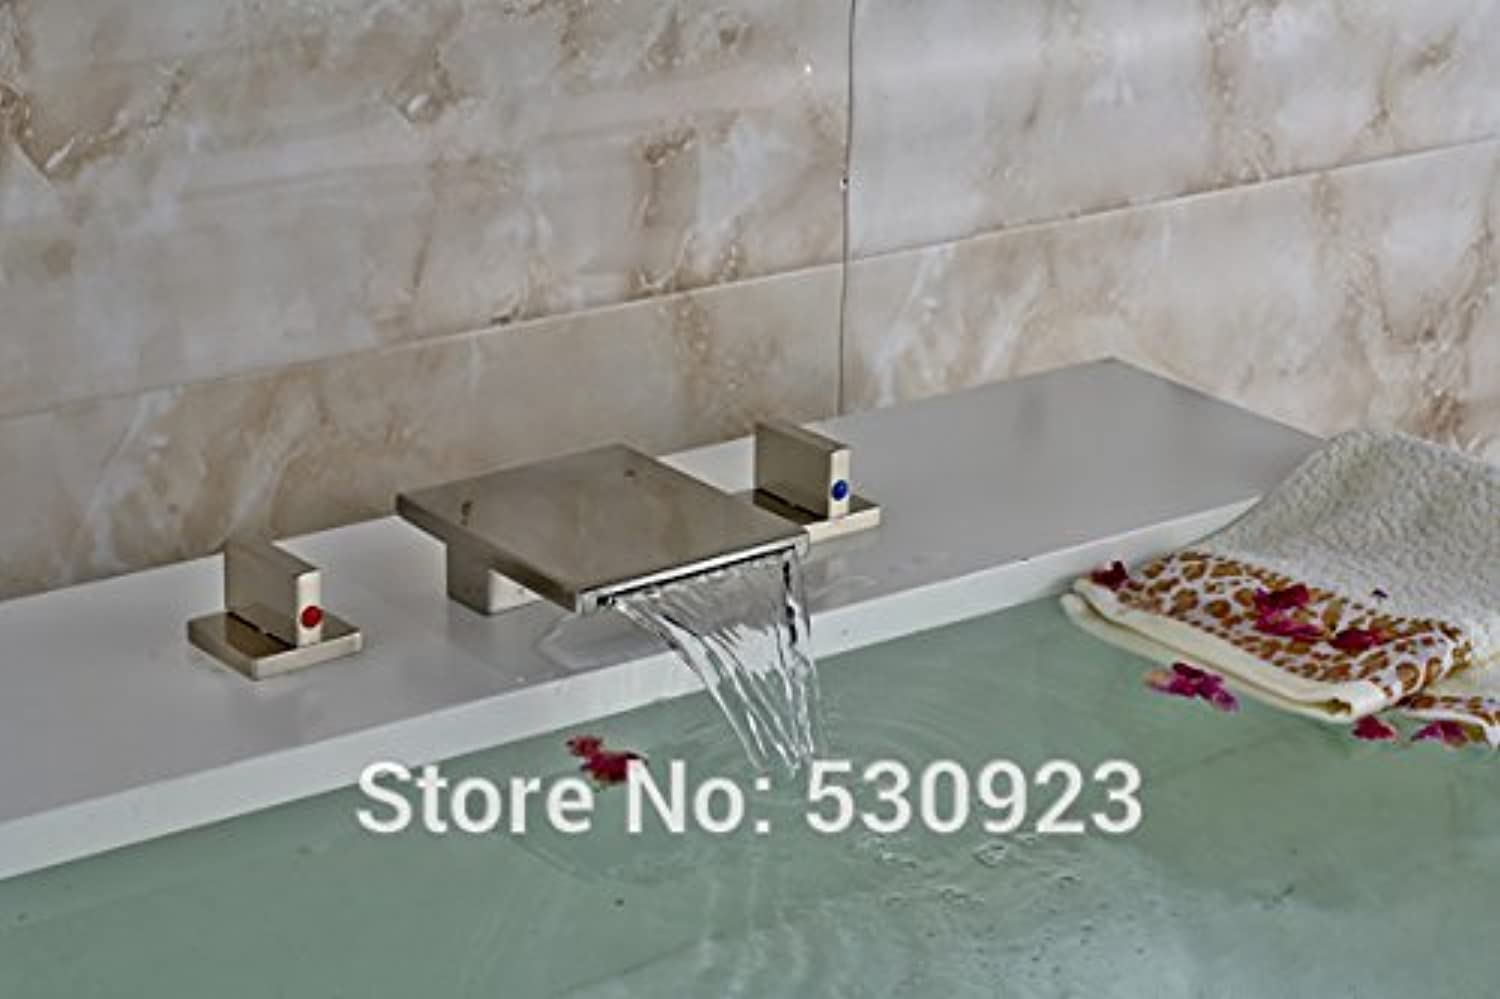 Maifeini The New Dual-Handle Three Hole Spout Waterfall Bathroom Basin Series Stylish Brushed Nickel Plated Heat Sink Boat Mixer Taps Tap